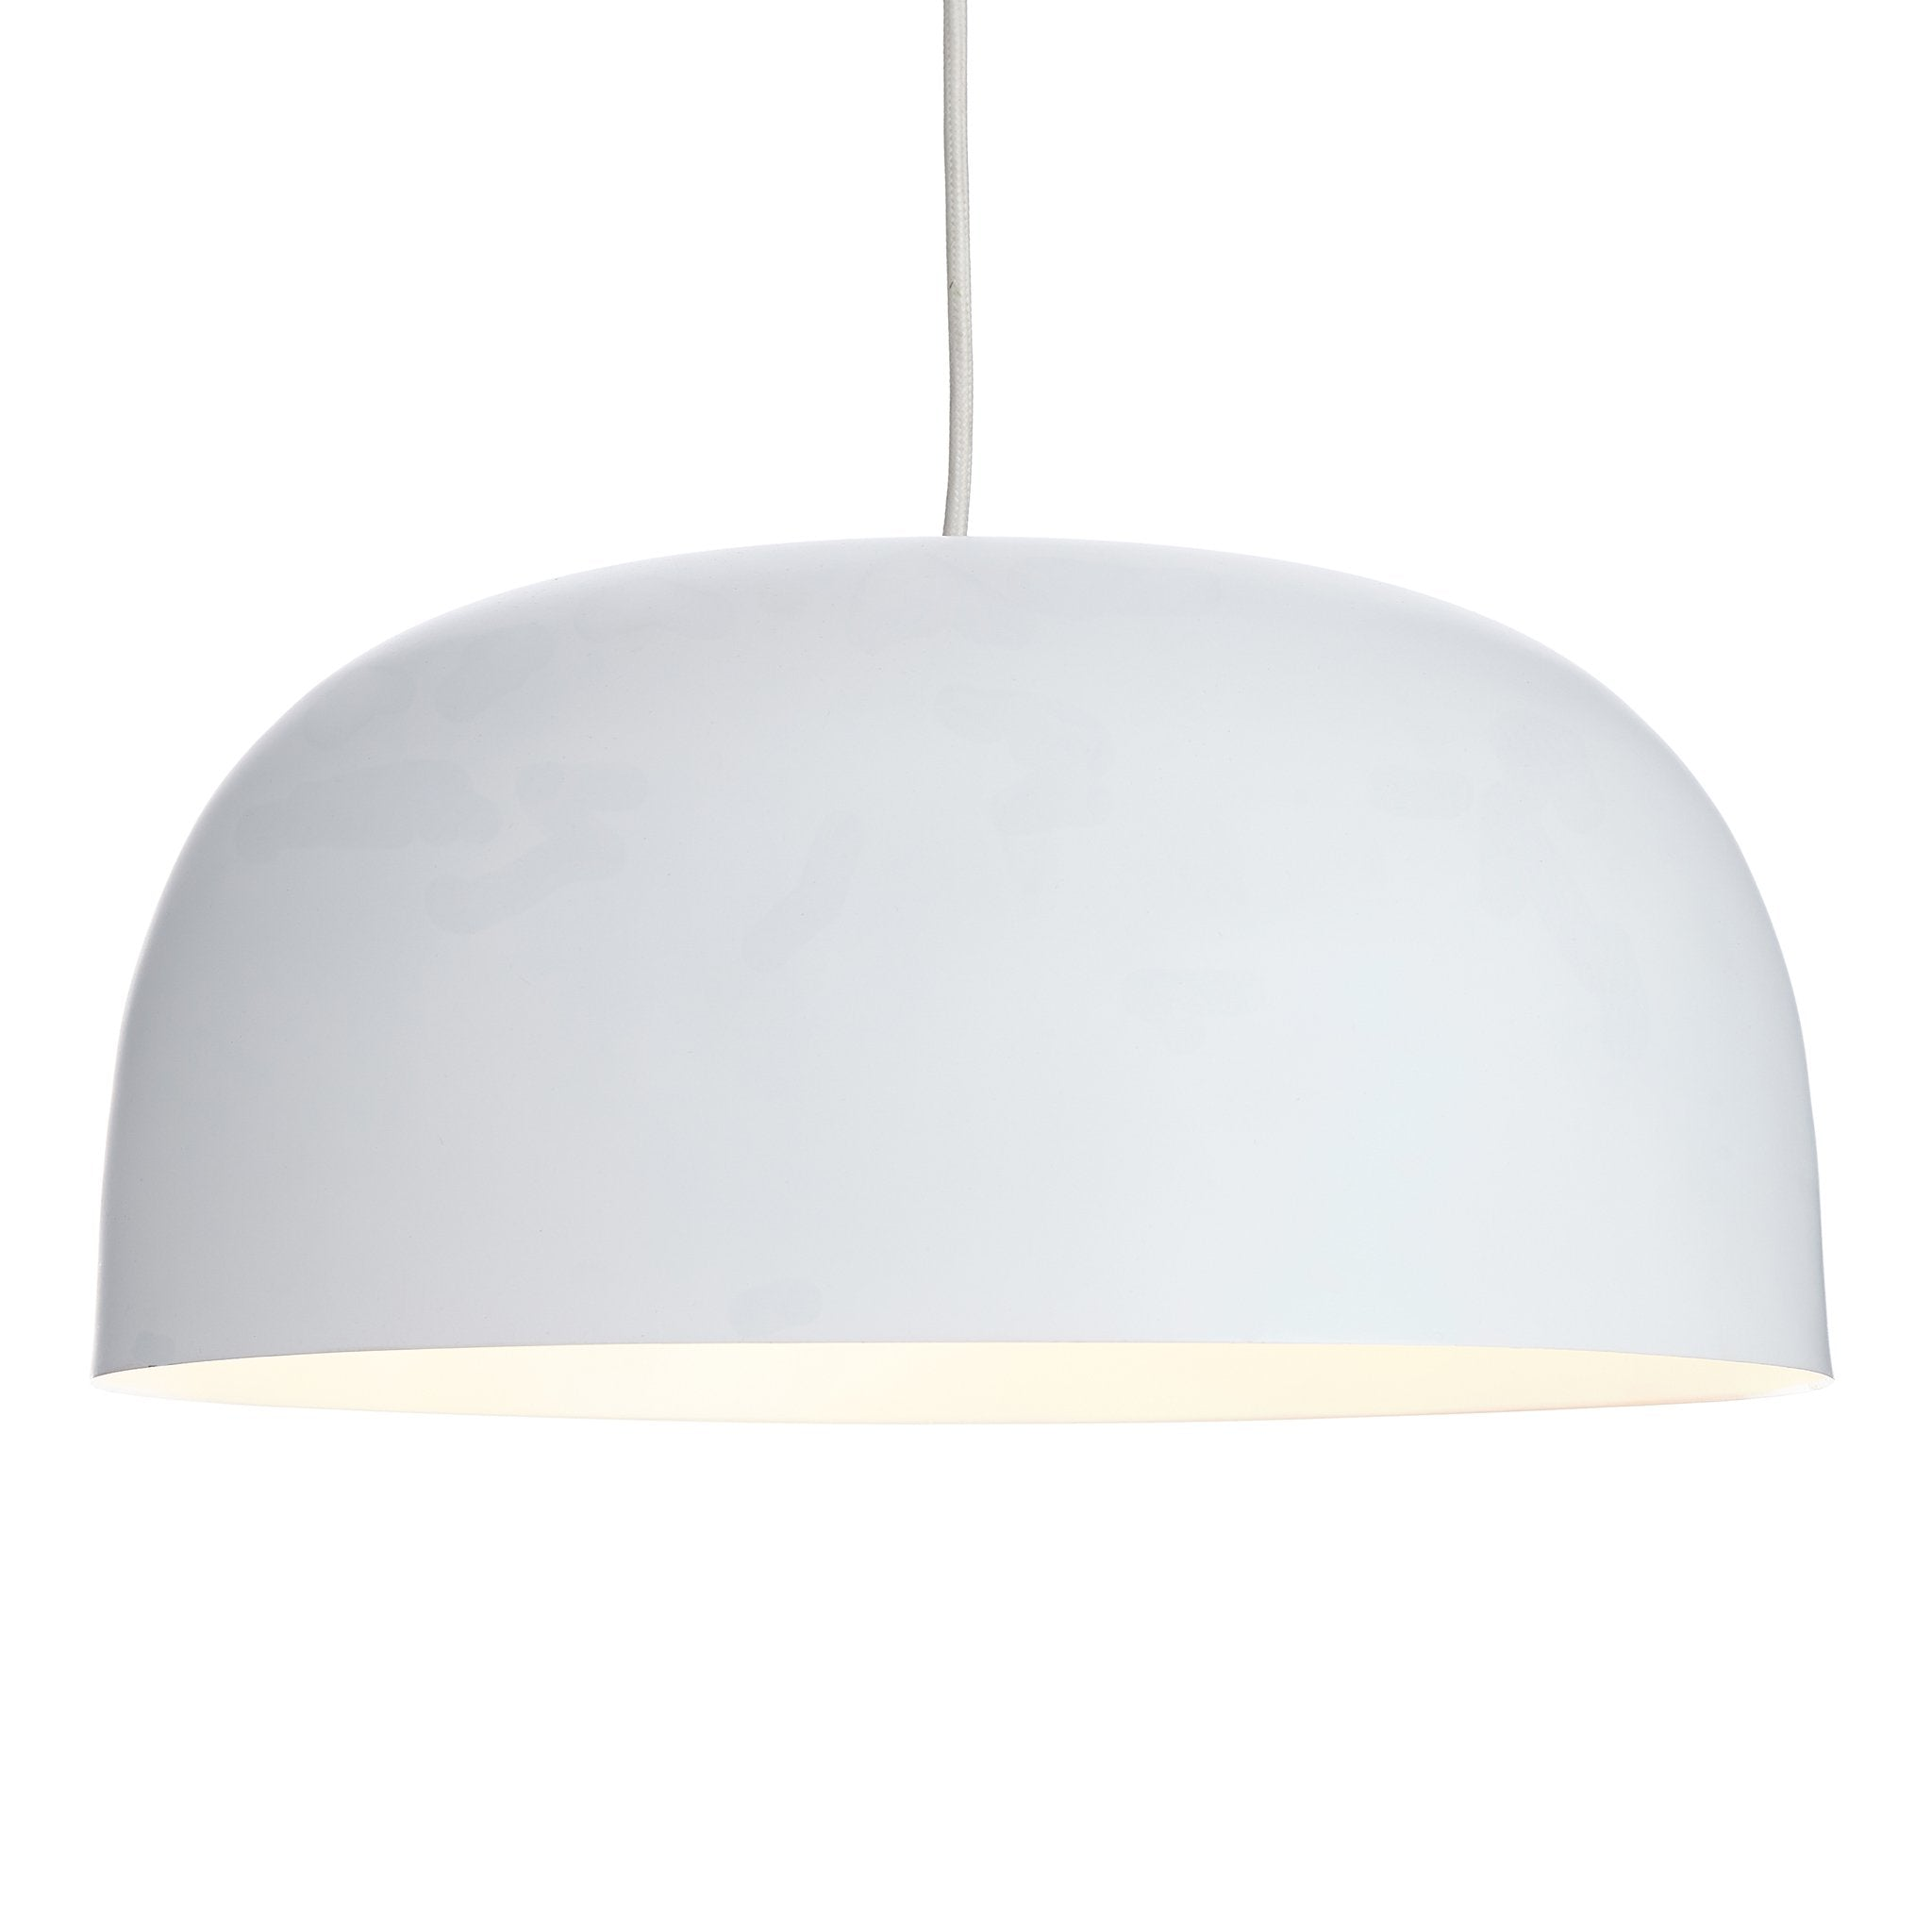 Sadum Pendant Lamp in white | Home & Living inspiration | URBANARA